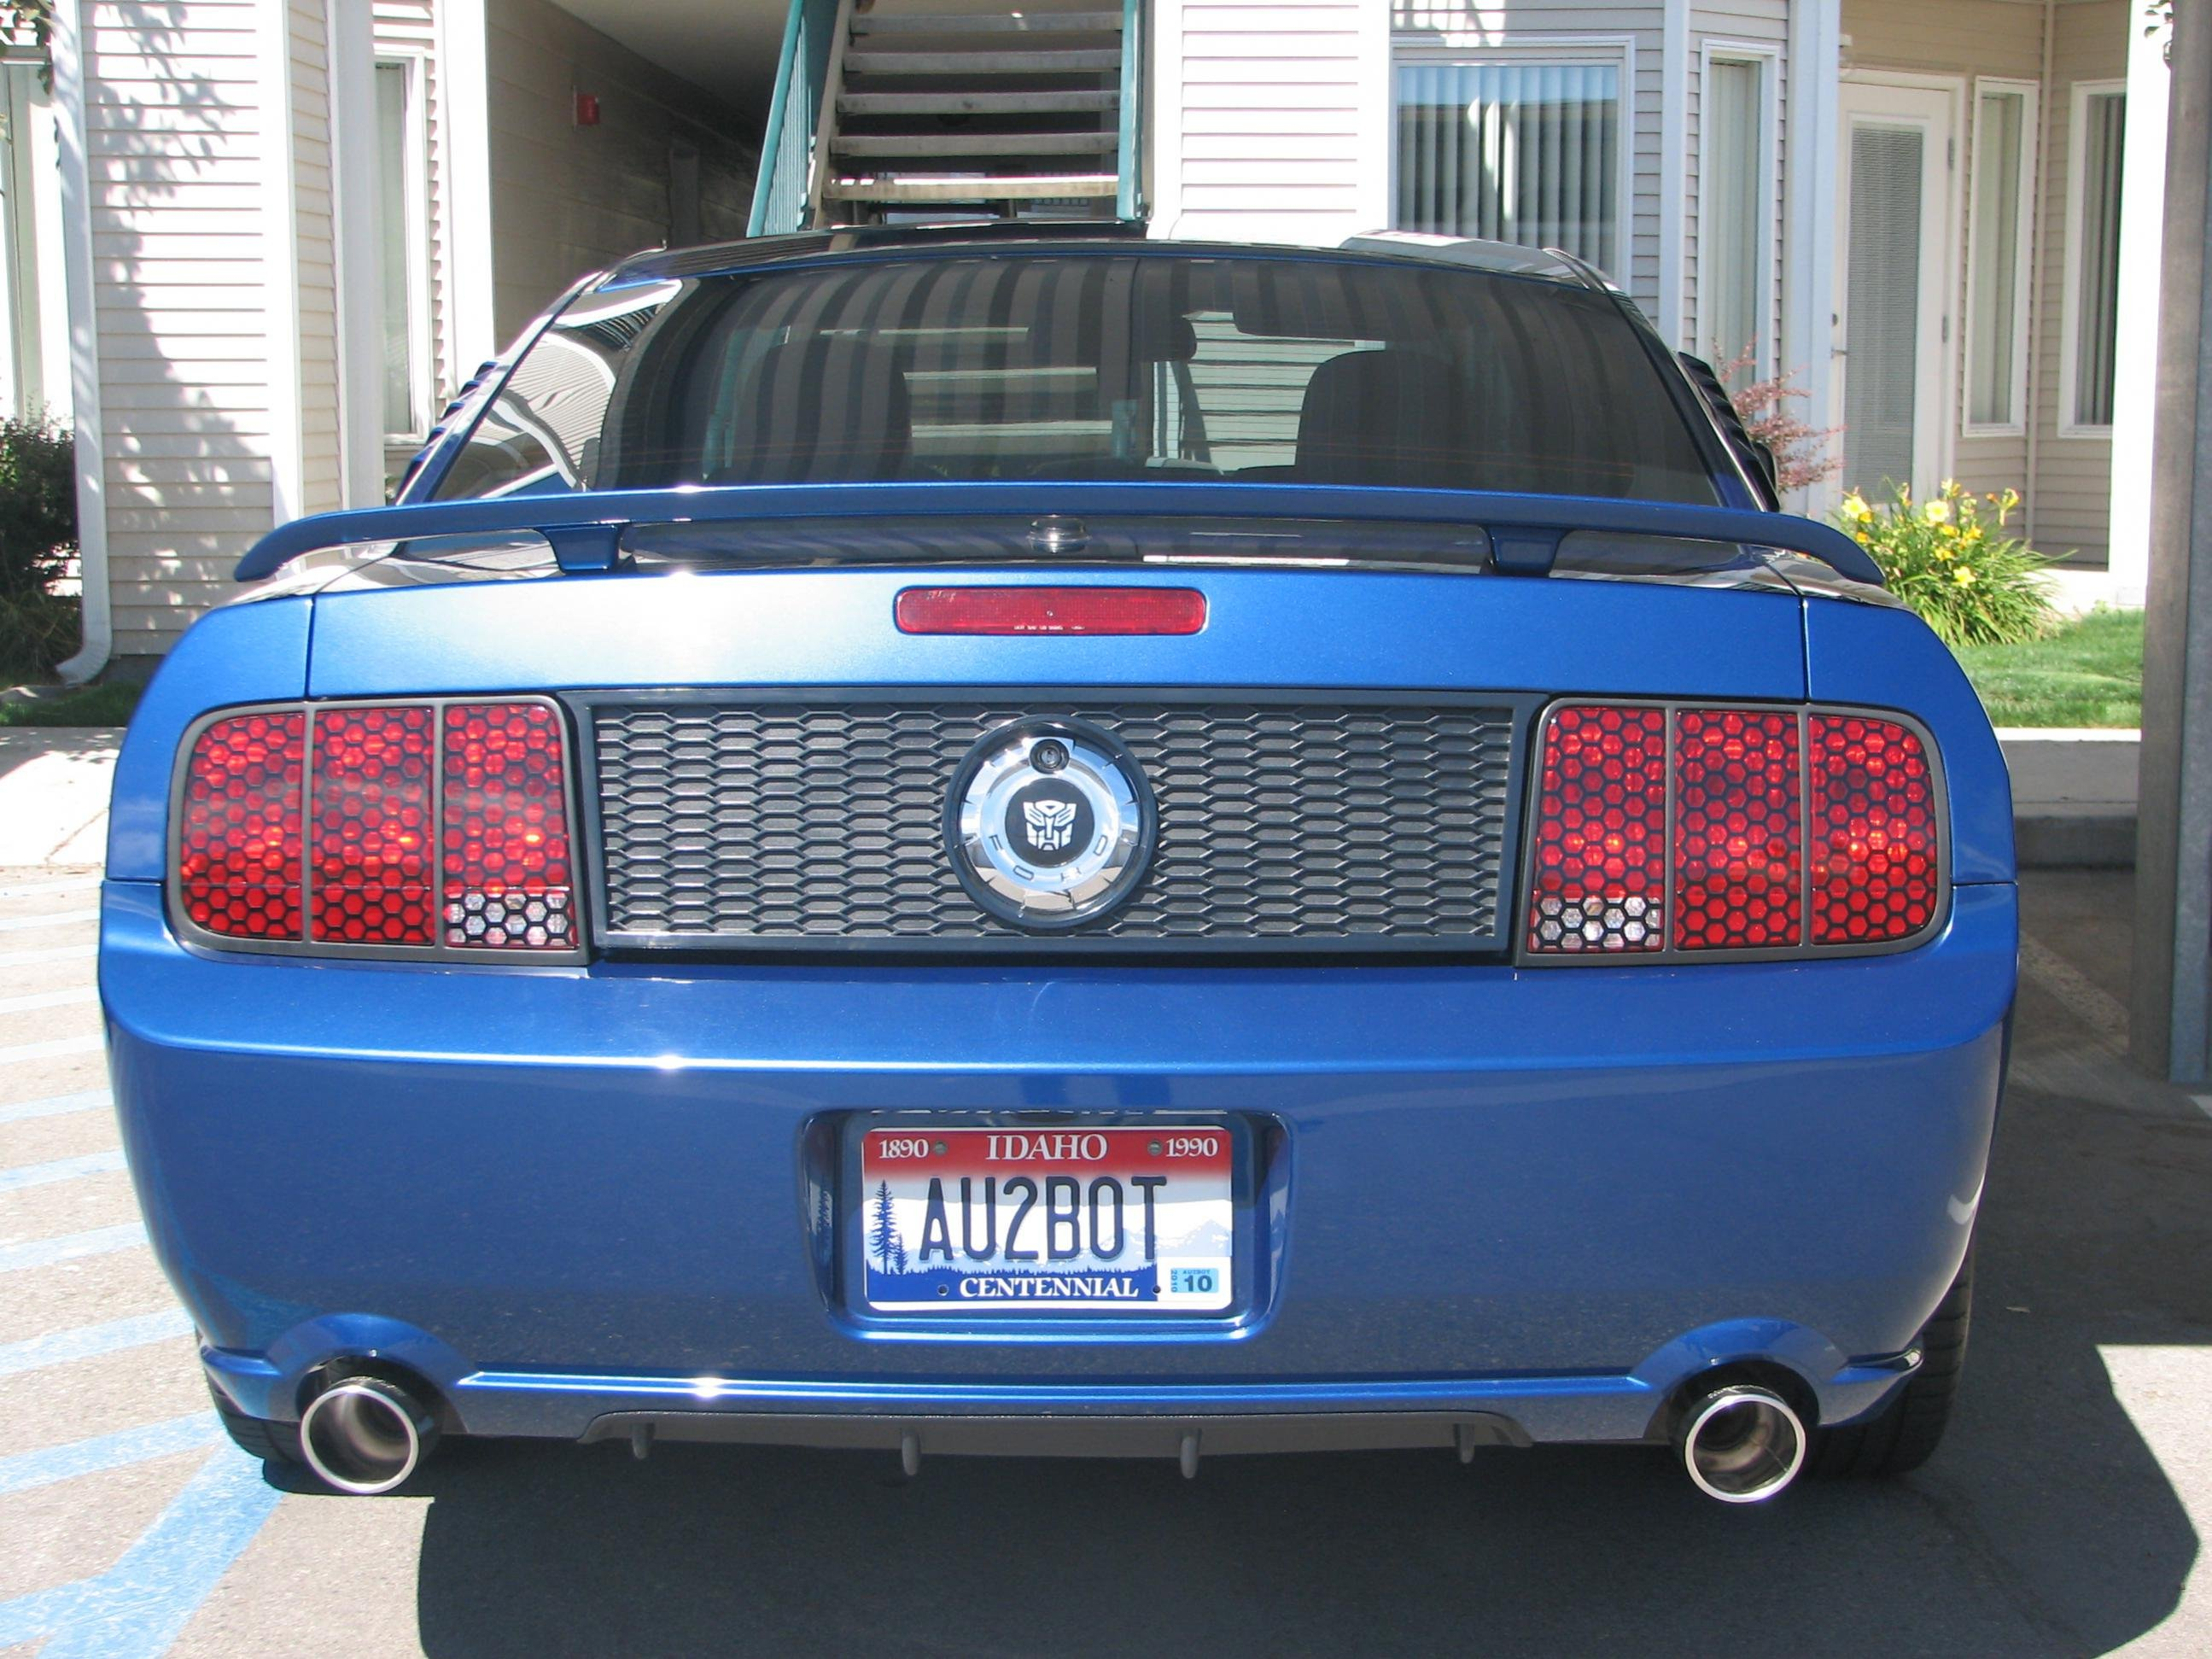 Customized License Plates >> Personalized License Plates Cool Or Stupid Ford Mustang Forum